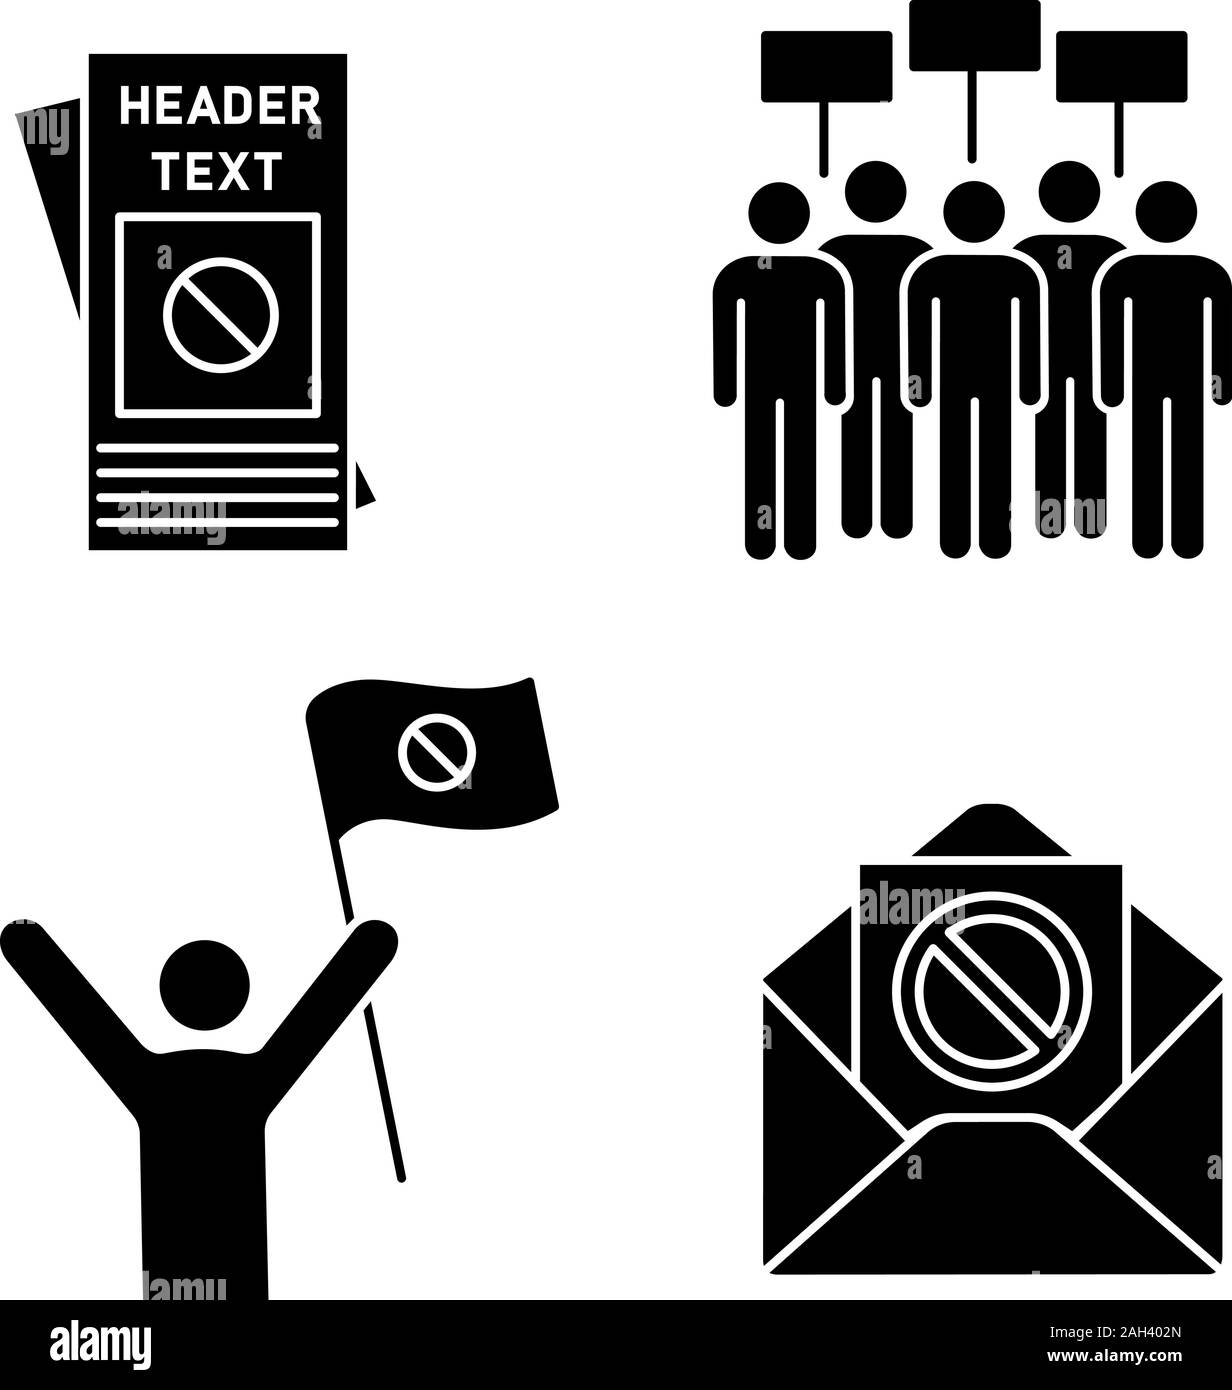 Protest action glyph icons set. Protester, meeting, protest email, leaflet. Silhouette symbols. Vector isolated illustration Stock Vector